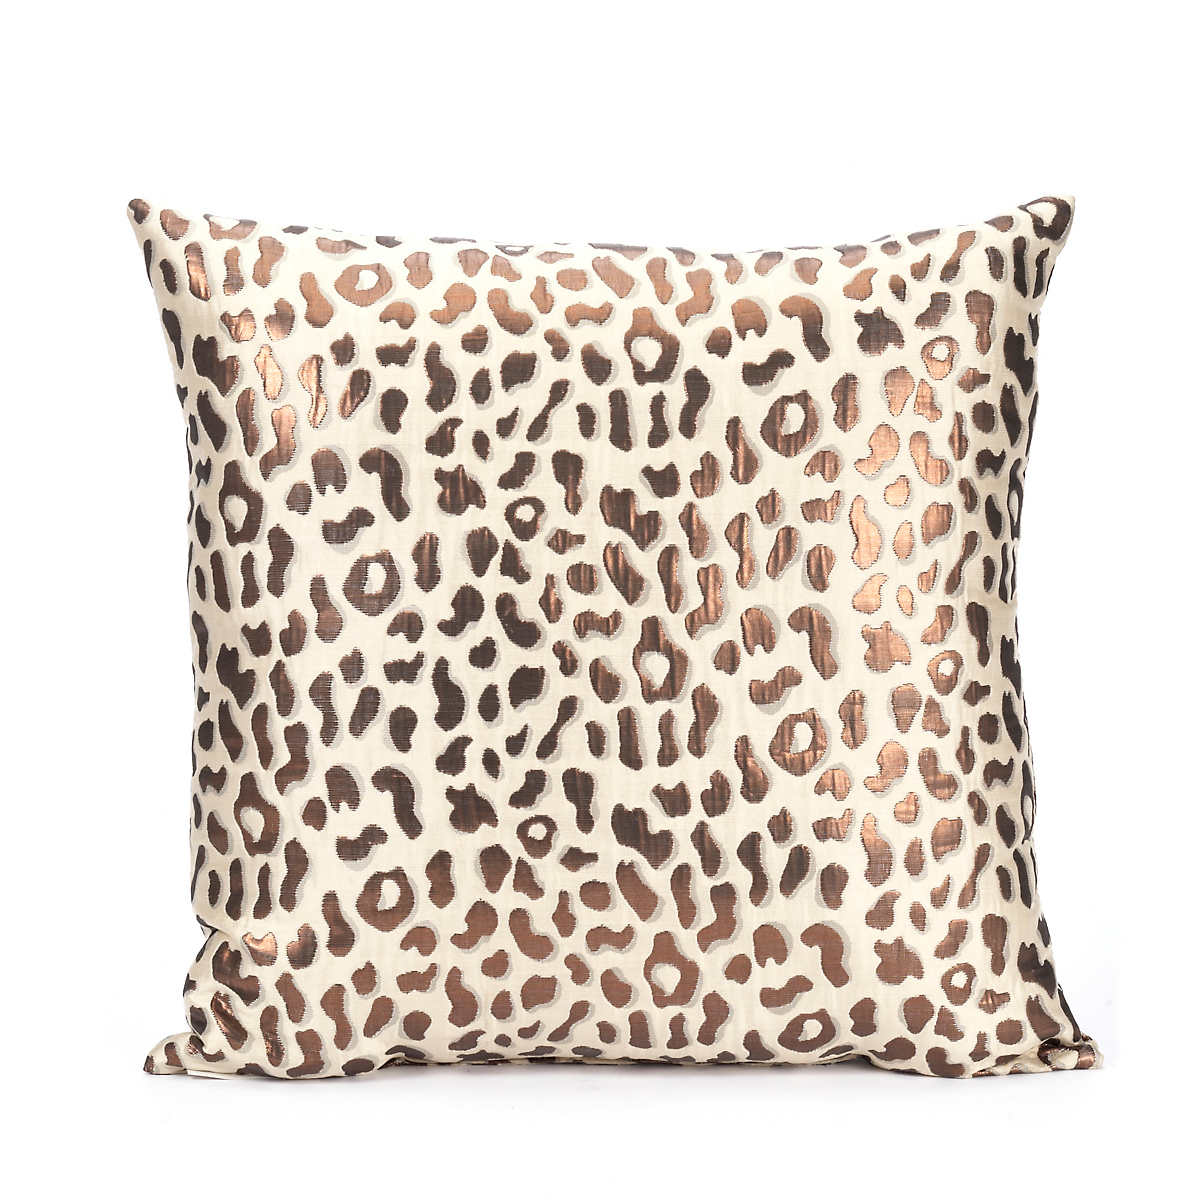 Metallic Cheetah Print Pillow